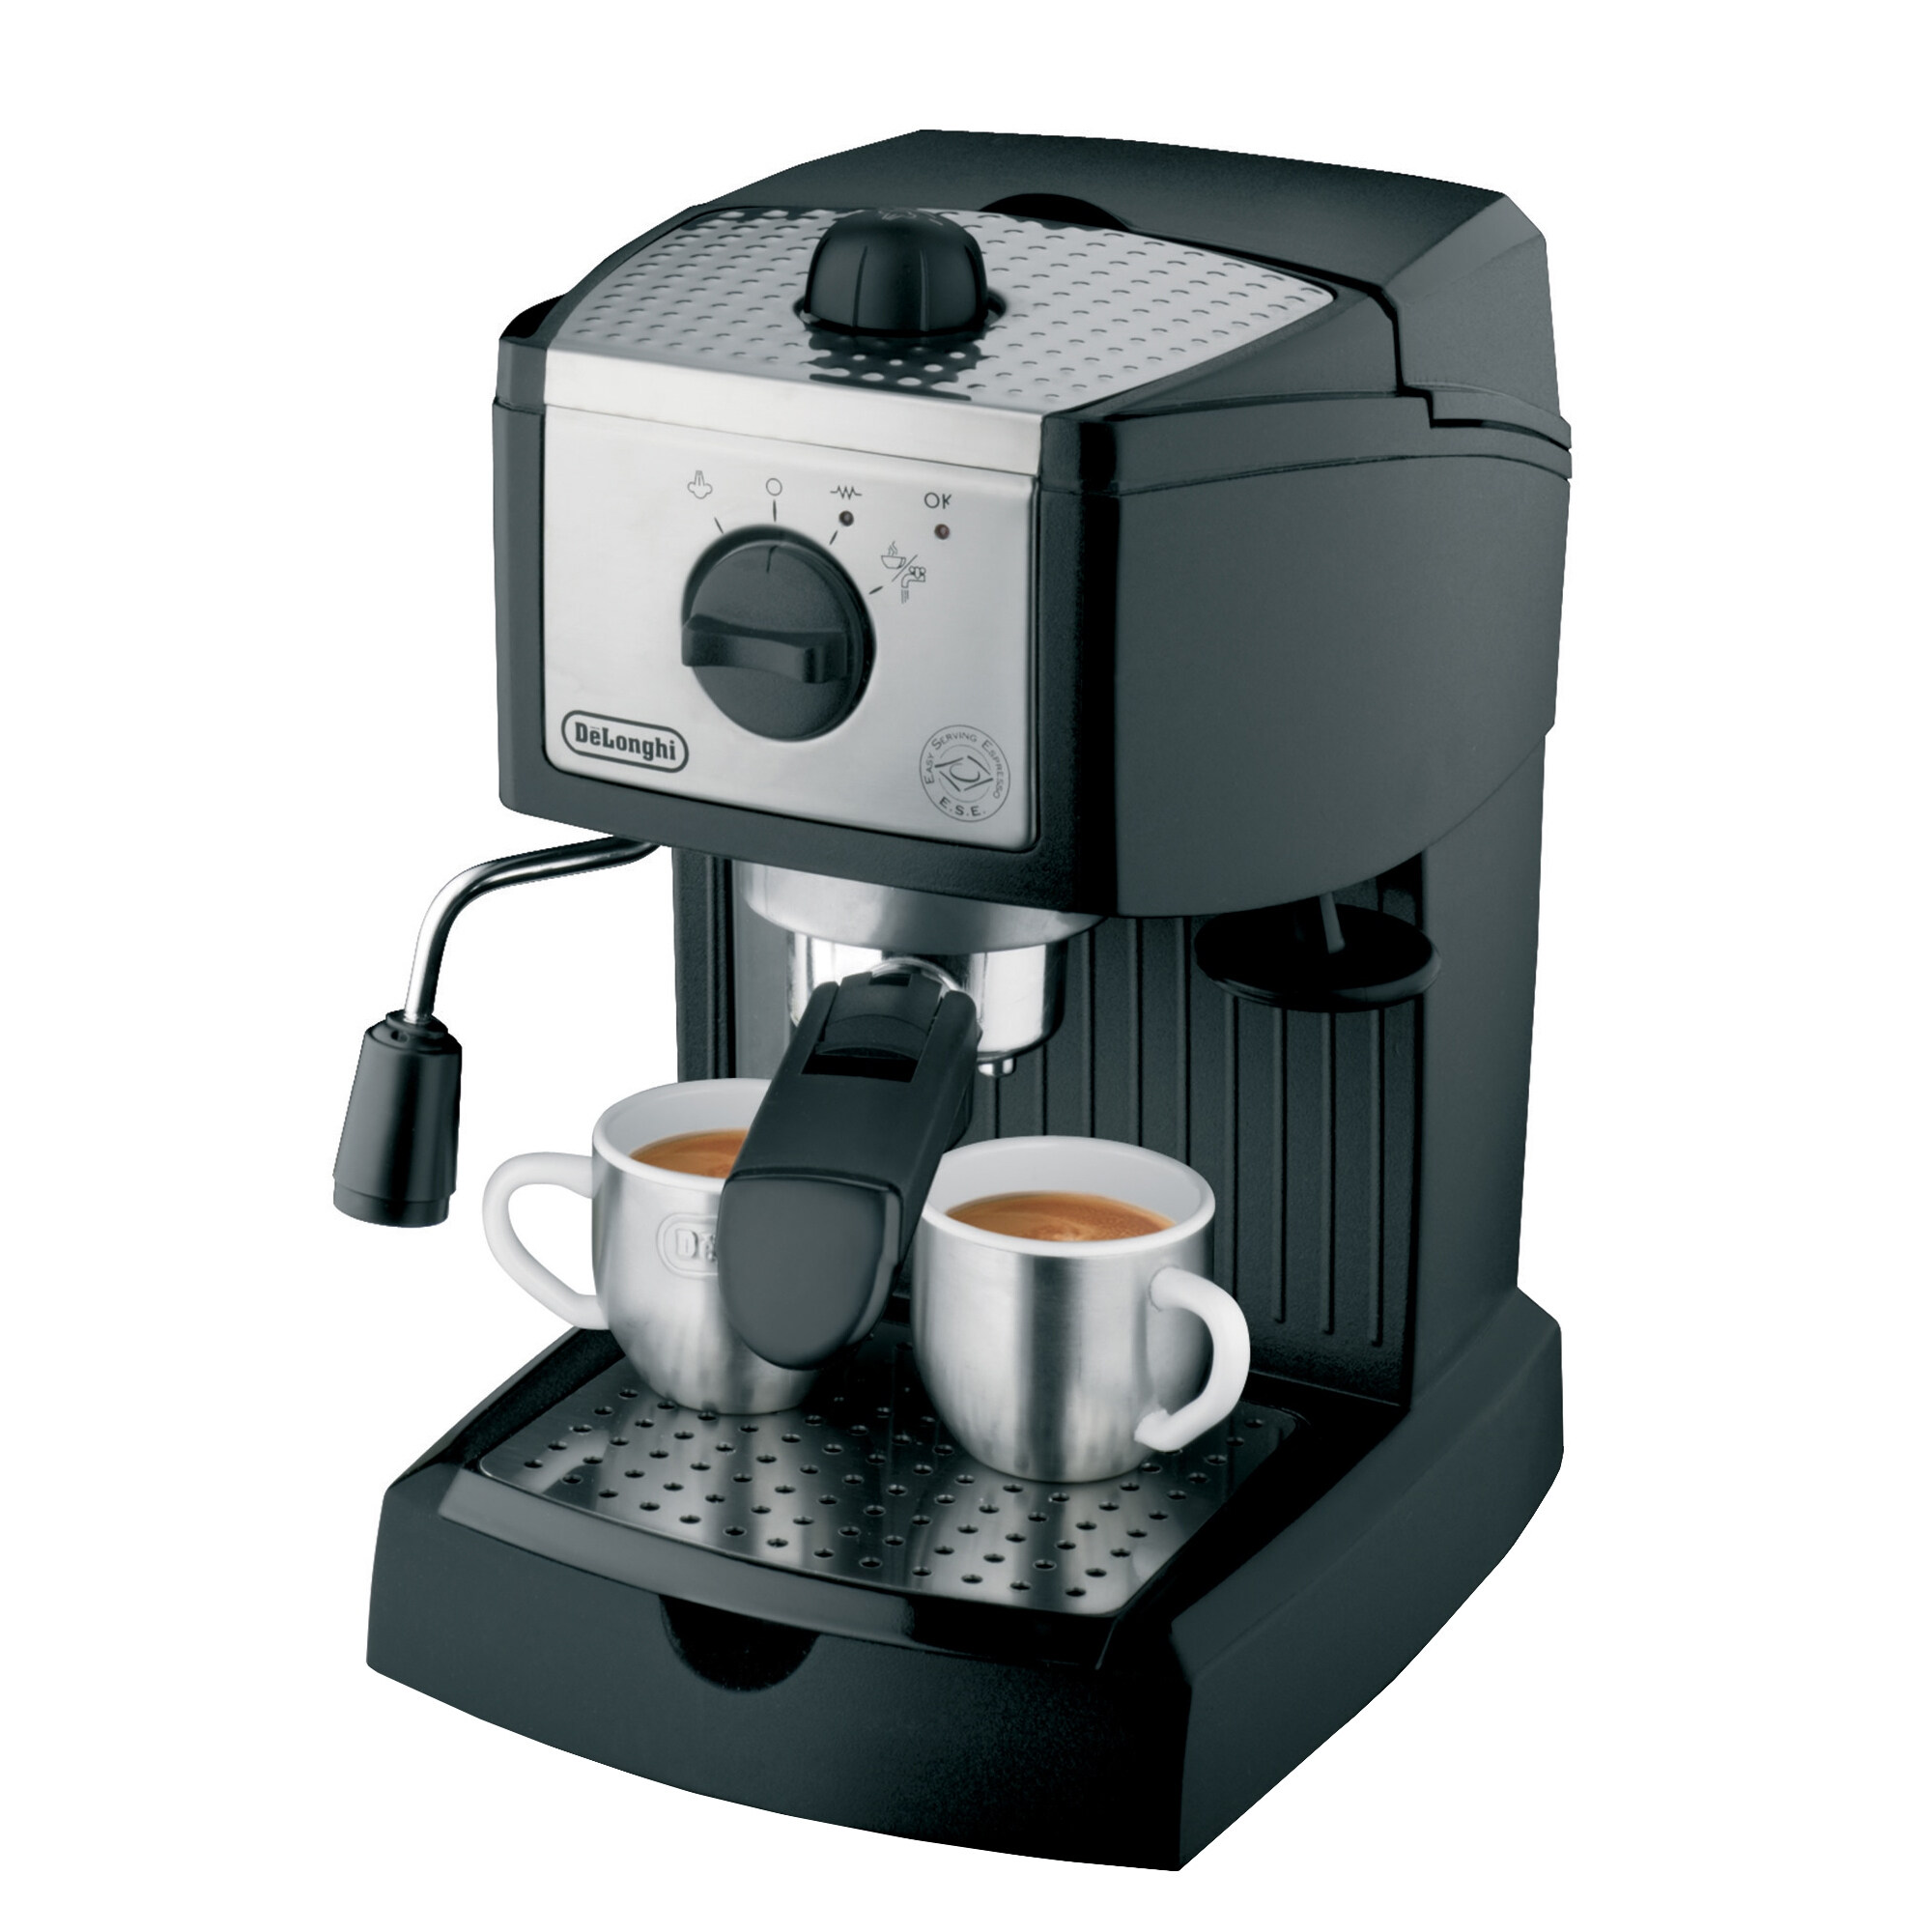 NEW DeLonghi EC155 15 BAR Pump Espresso and Cappuccino Maker EC 155